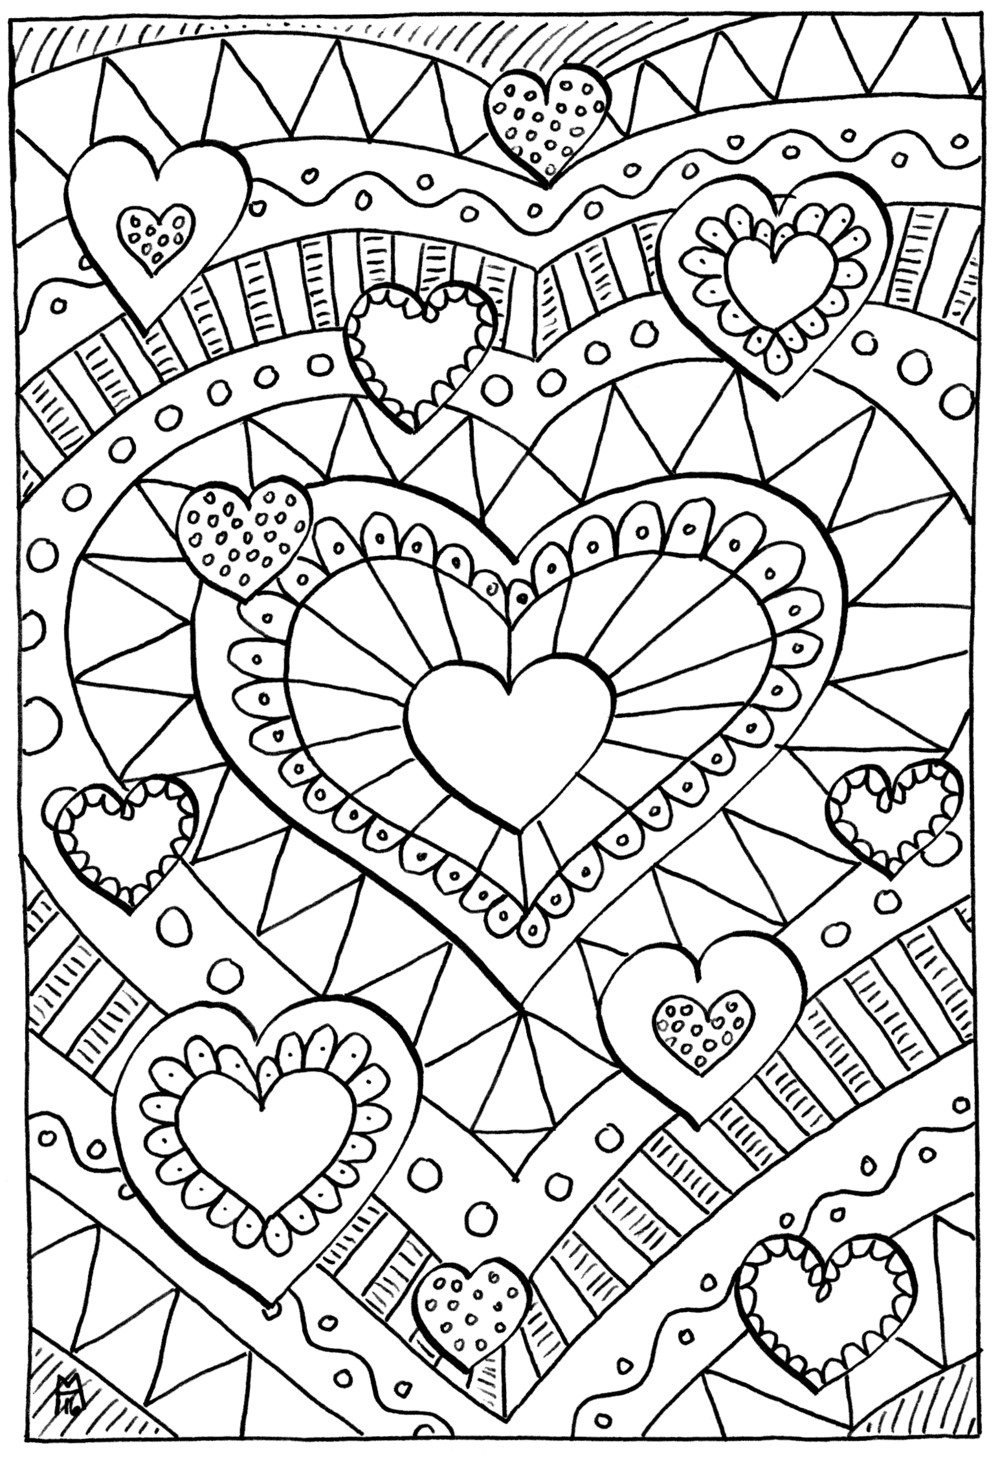 Coloring Pages For Boys Calm  Healing Hearts Coloring Page